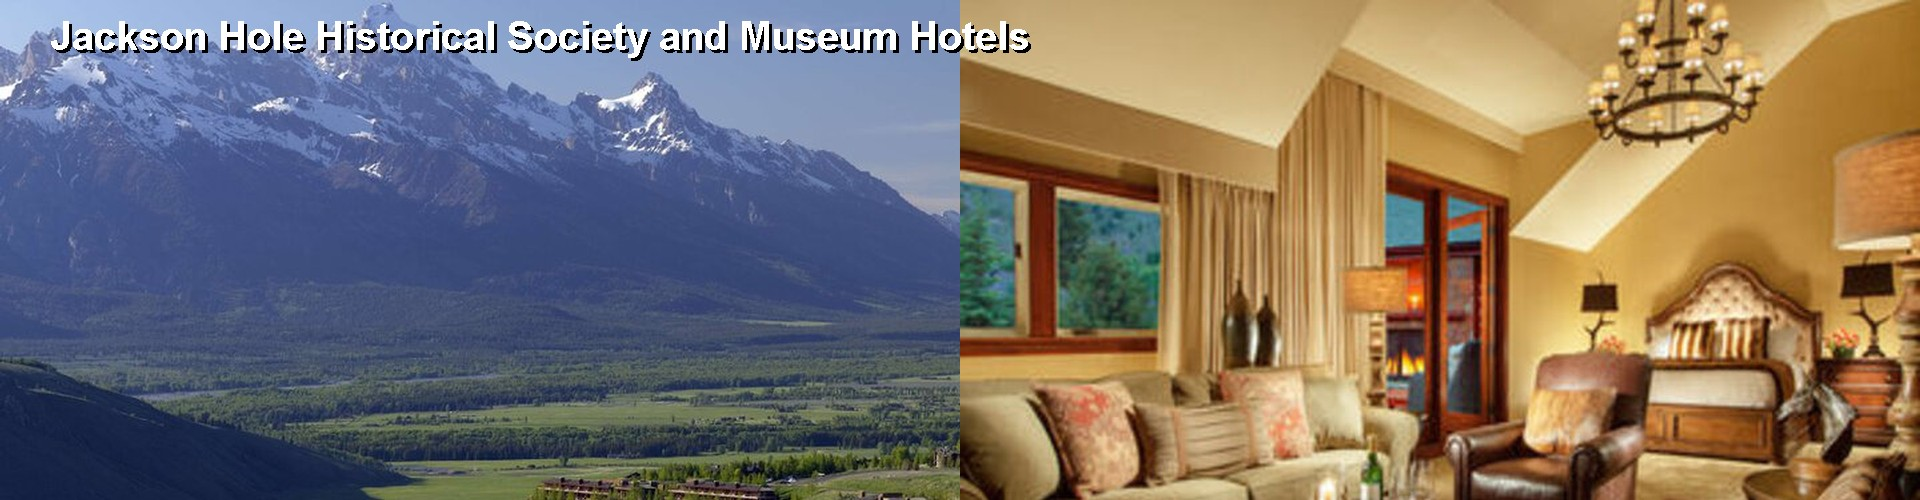 5 Best Hotels near Jackson Hole Historical Society and Museum